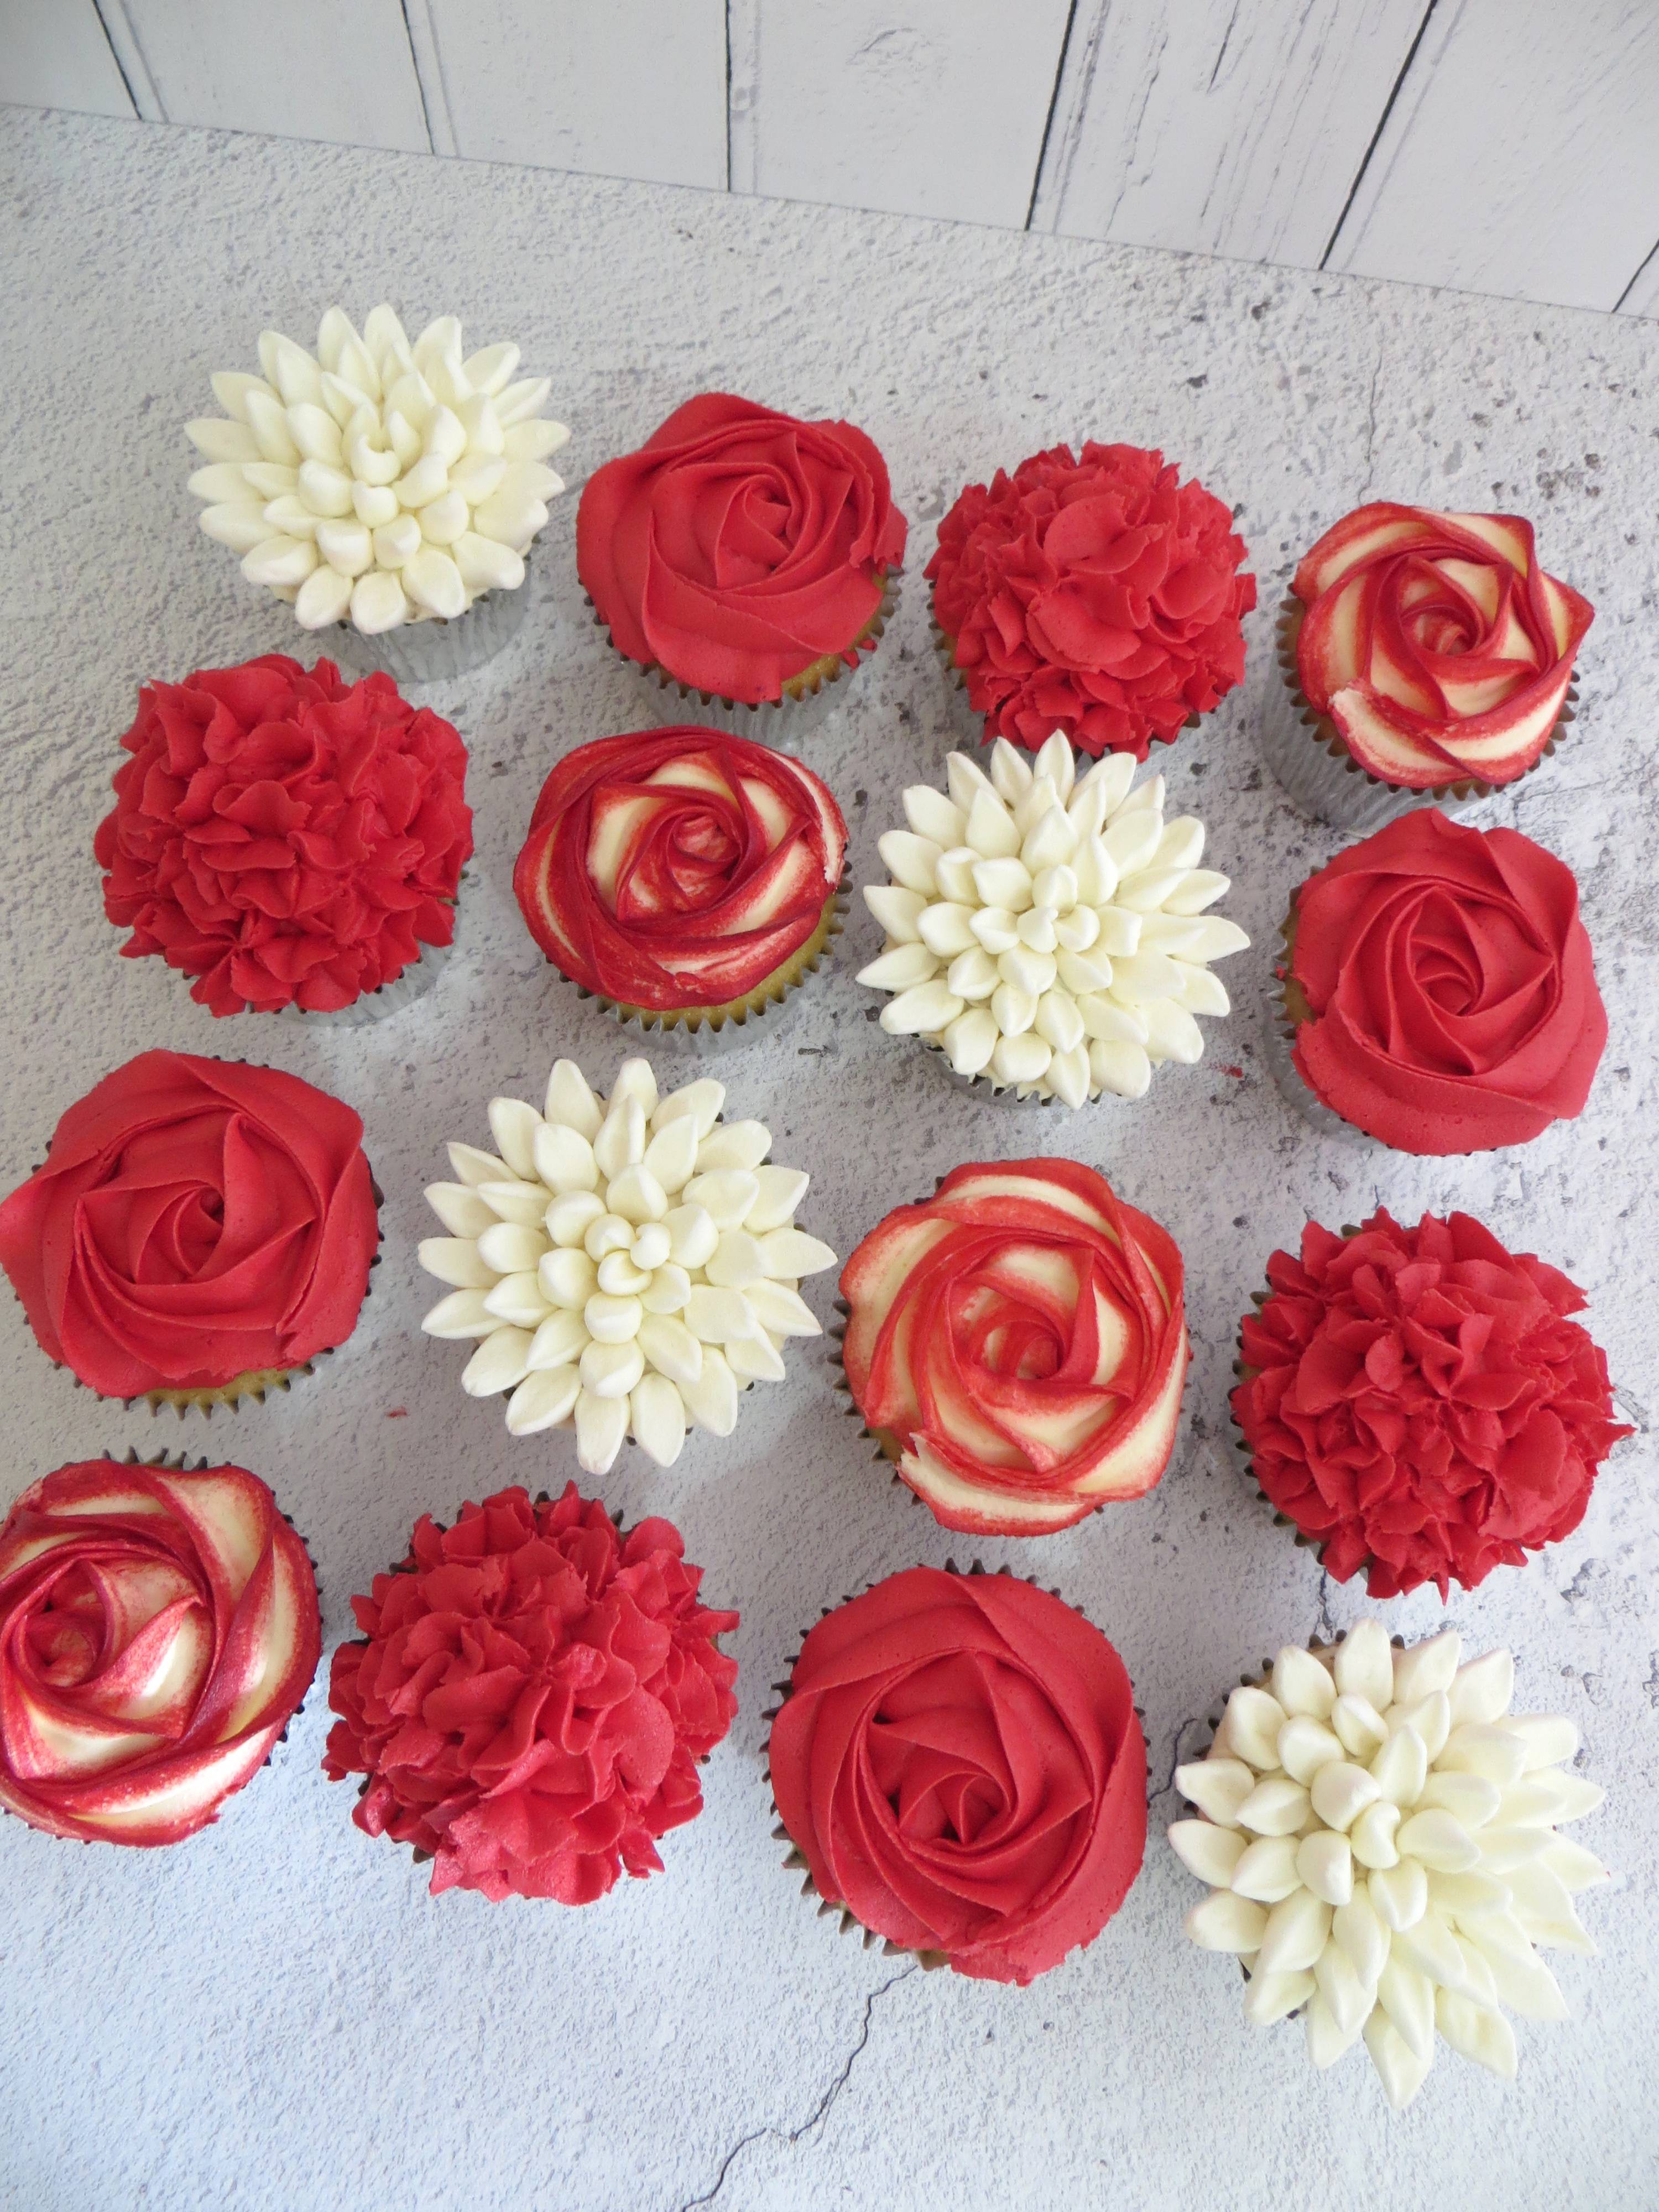 Red and white flower cupcakes